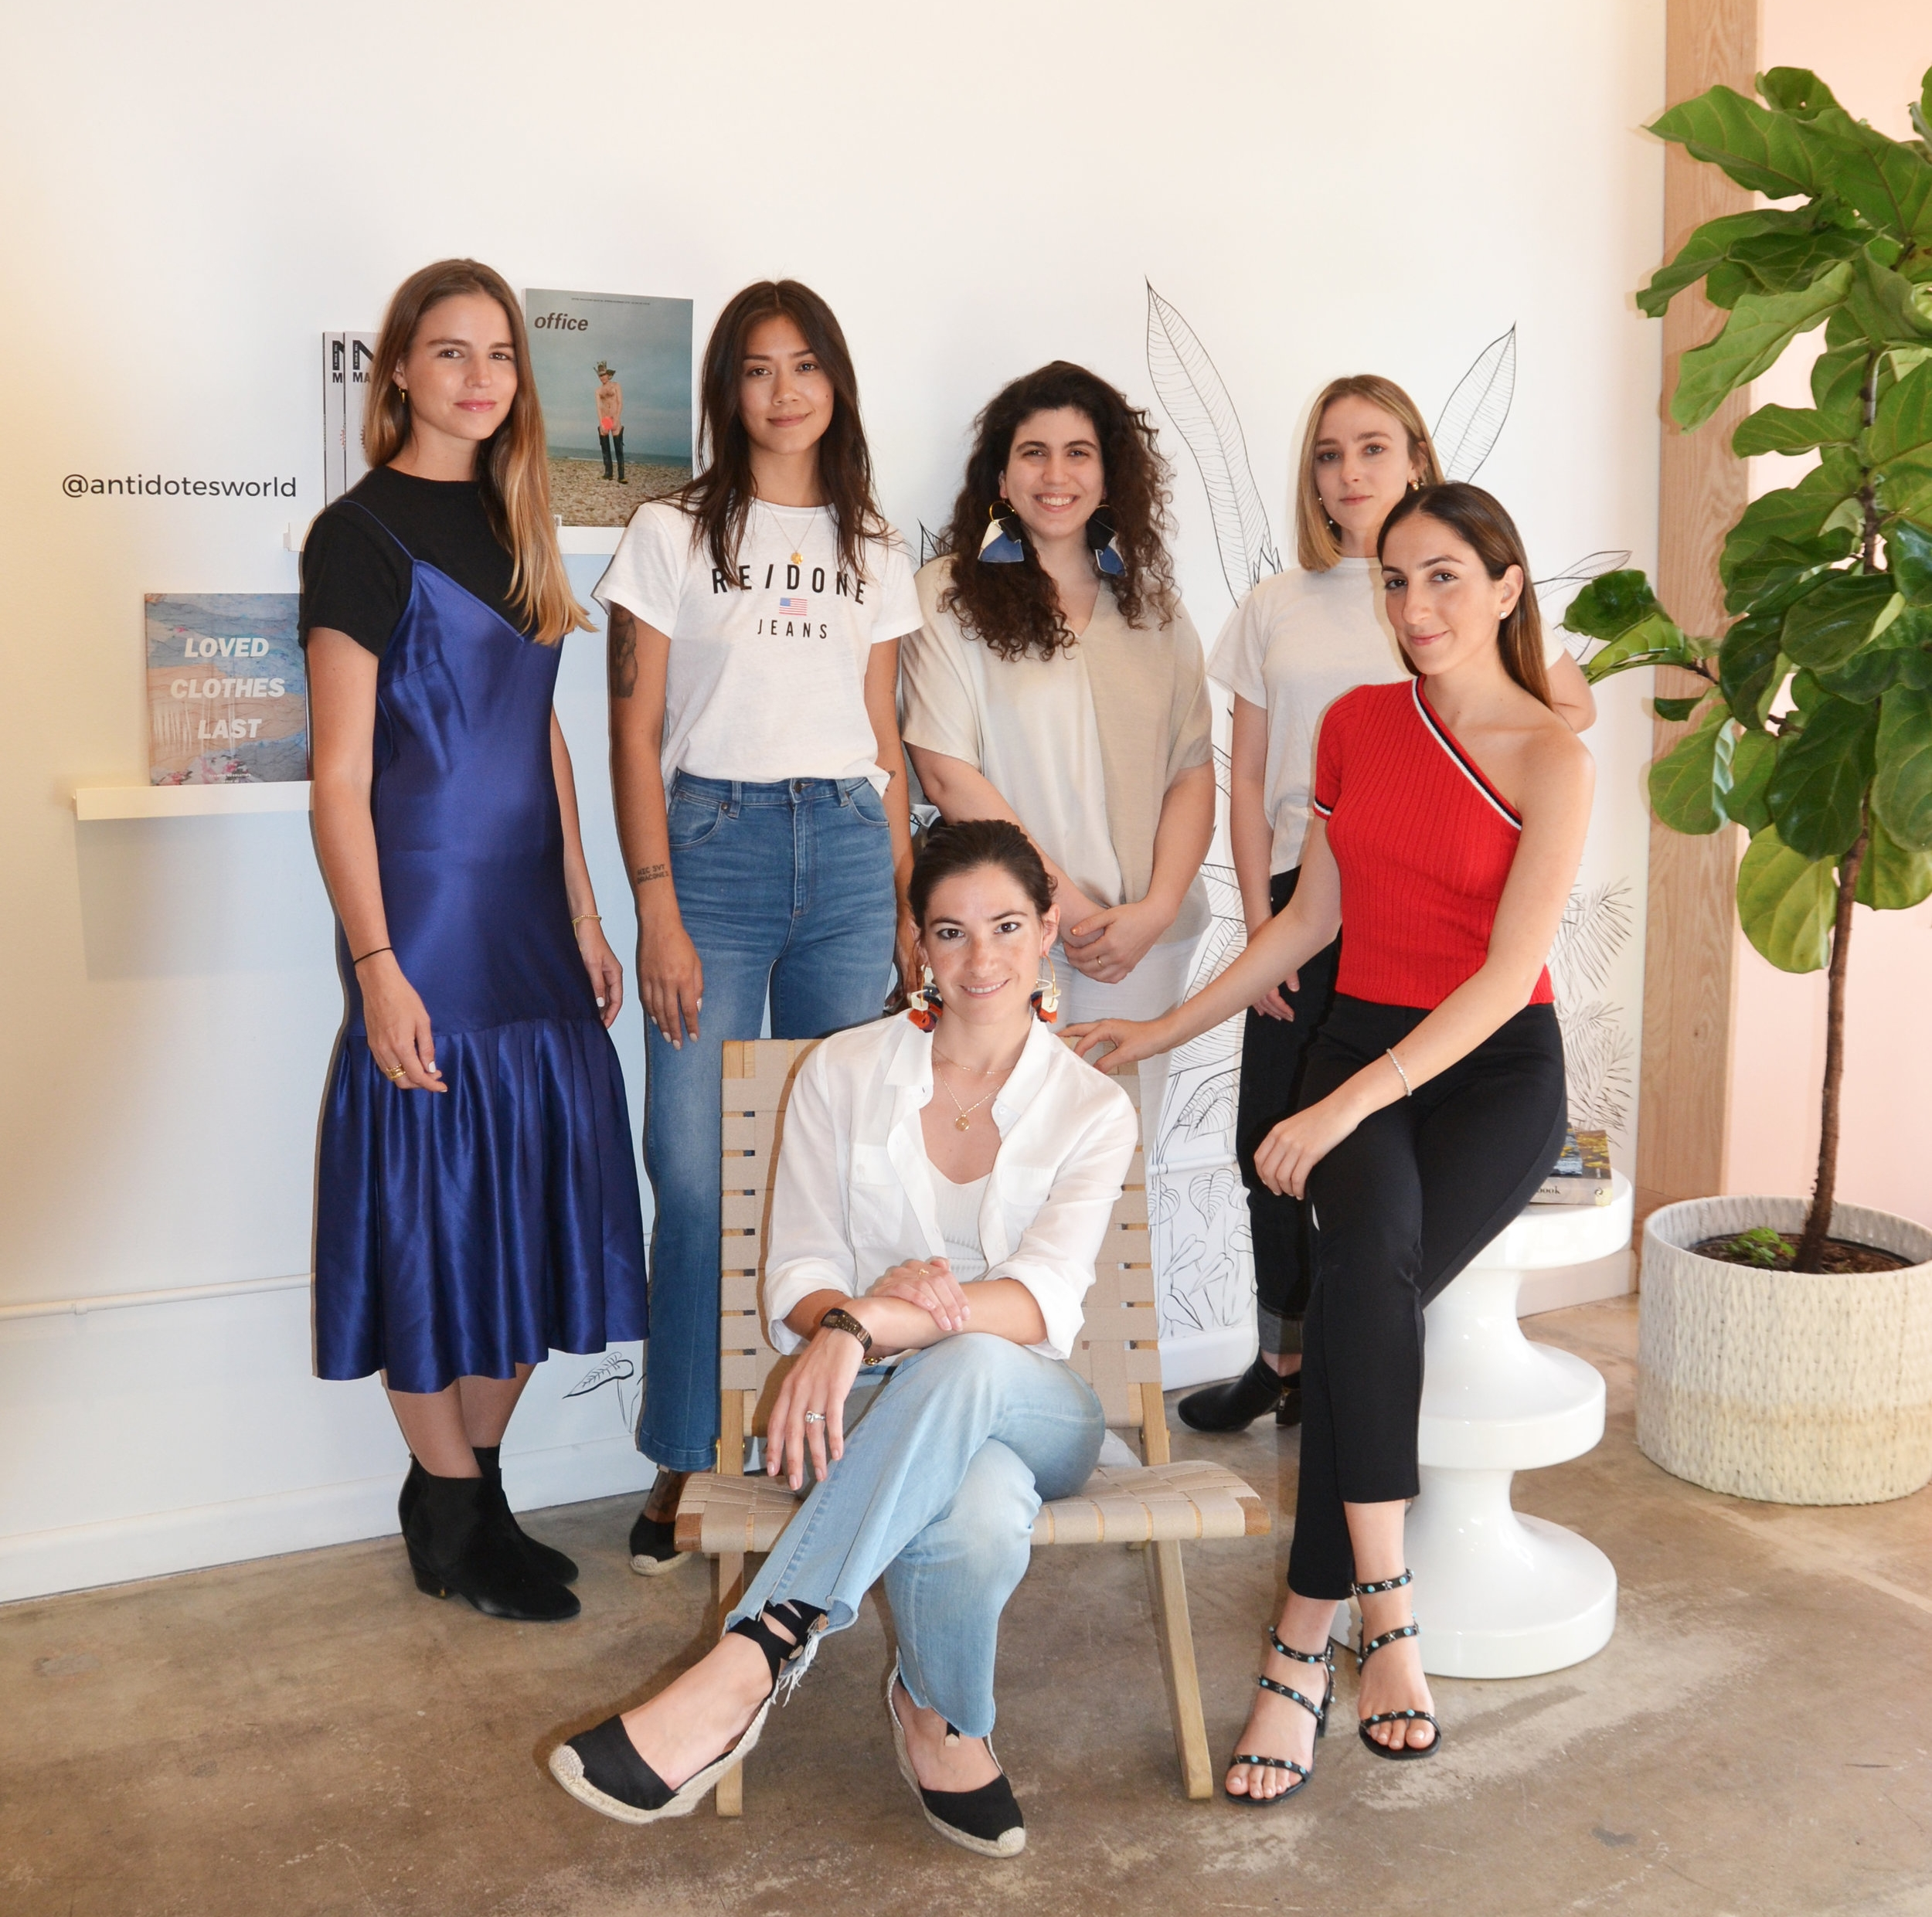 ANTIDOTE Founder Sophie Zembra and Her Team